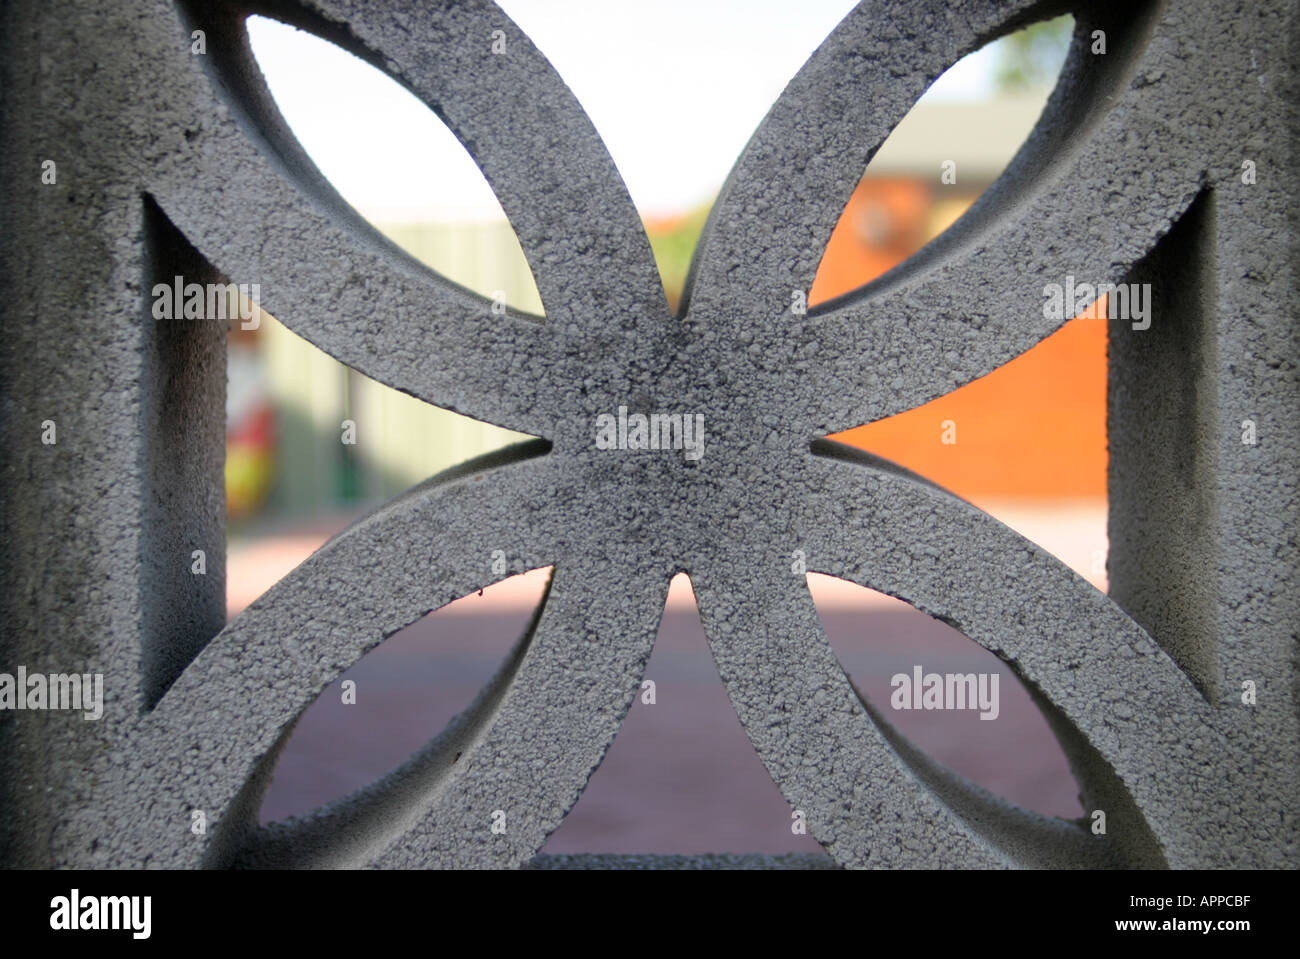 garden wall decorative concrete block stock photo, royalty free